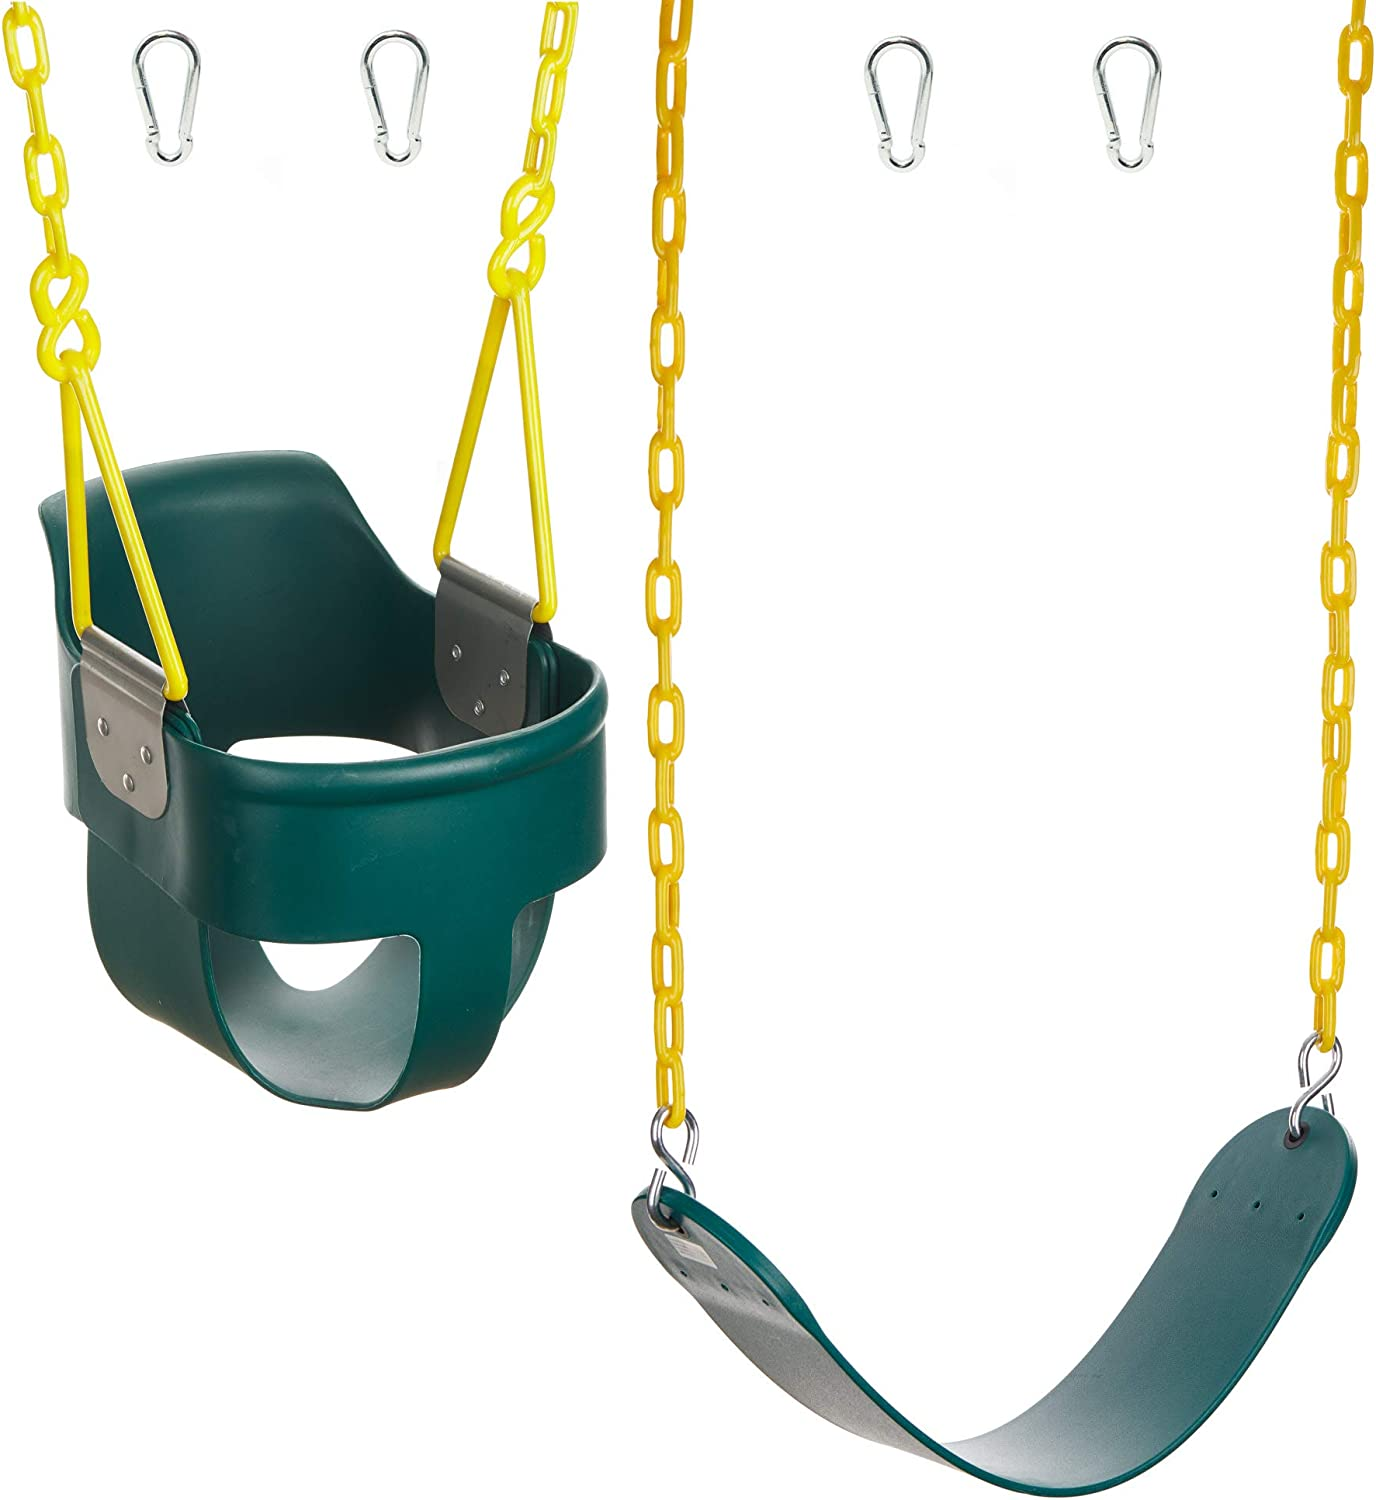 Squirrel Products High Back Full Bucket Swing 2.0 with Triangle and Chain Dip and Heavy Duty Swing Seat Combo Pack with Carabiners - Green